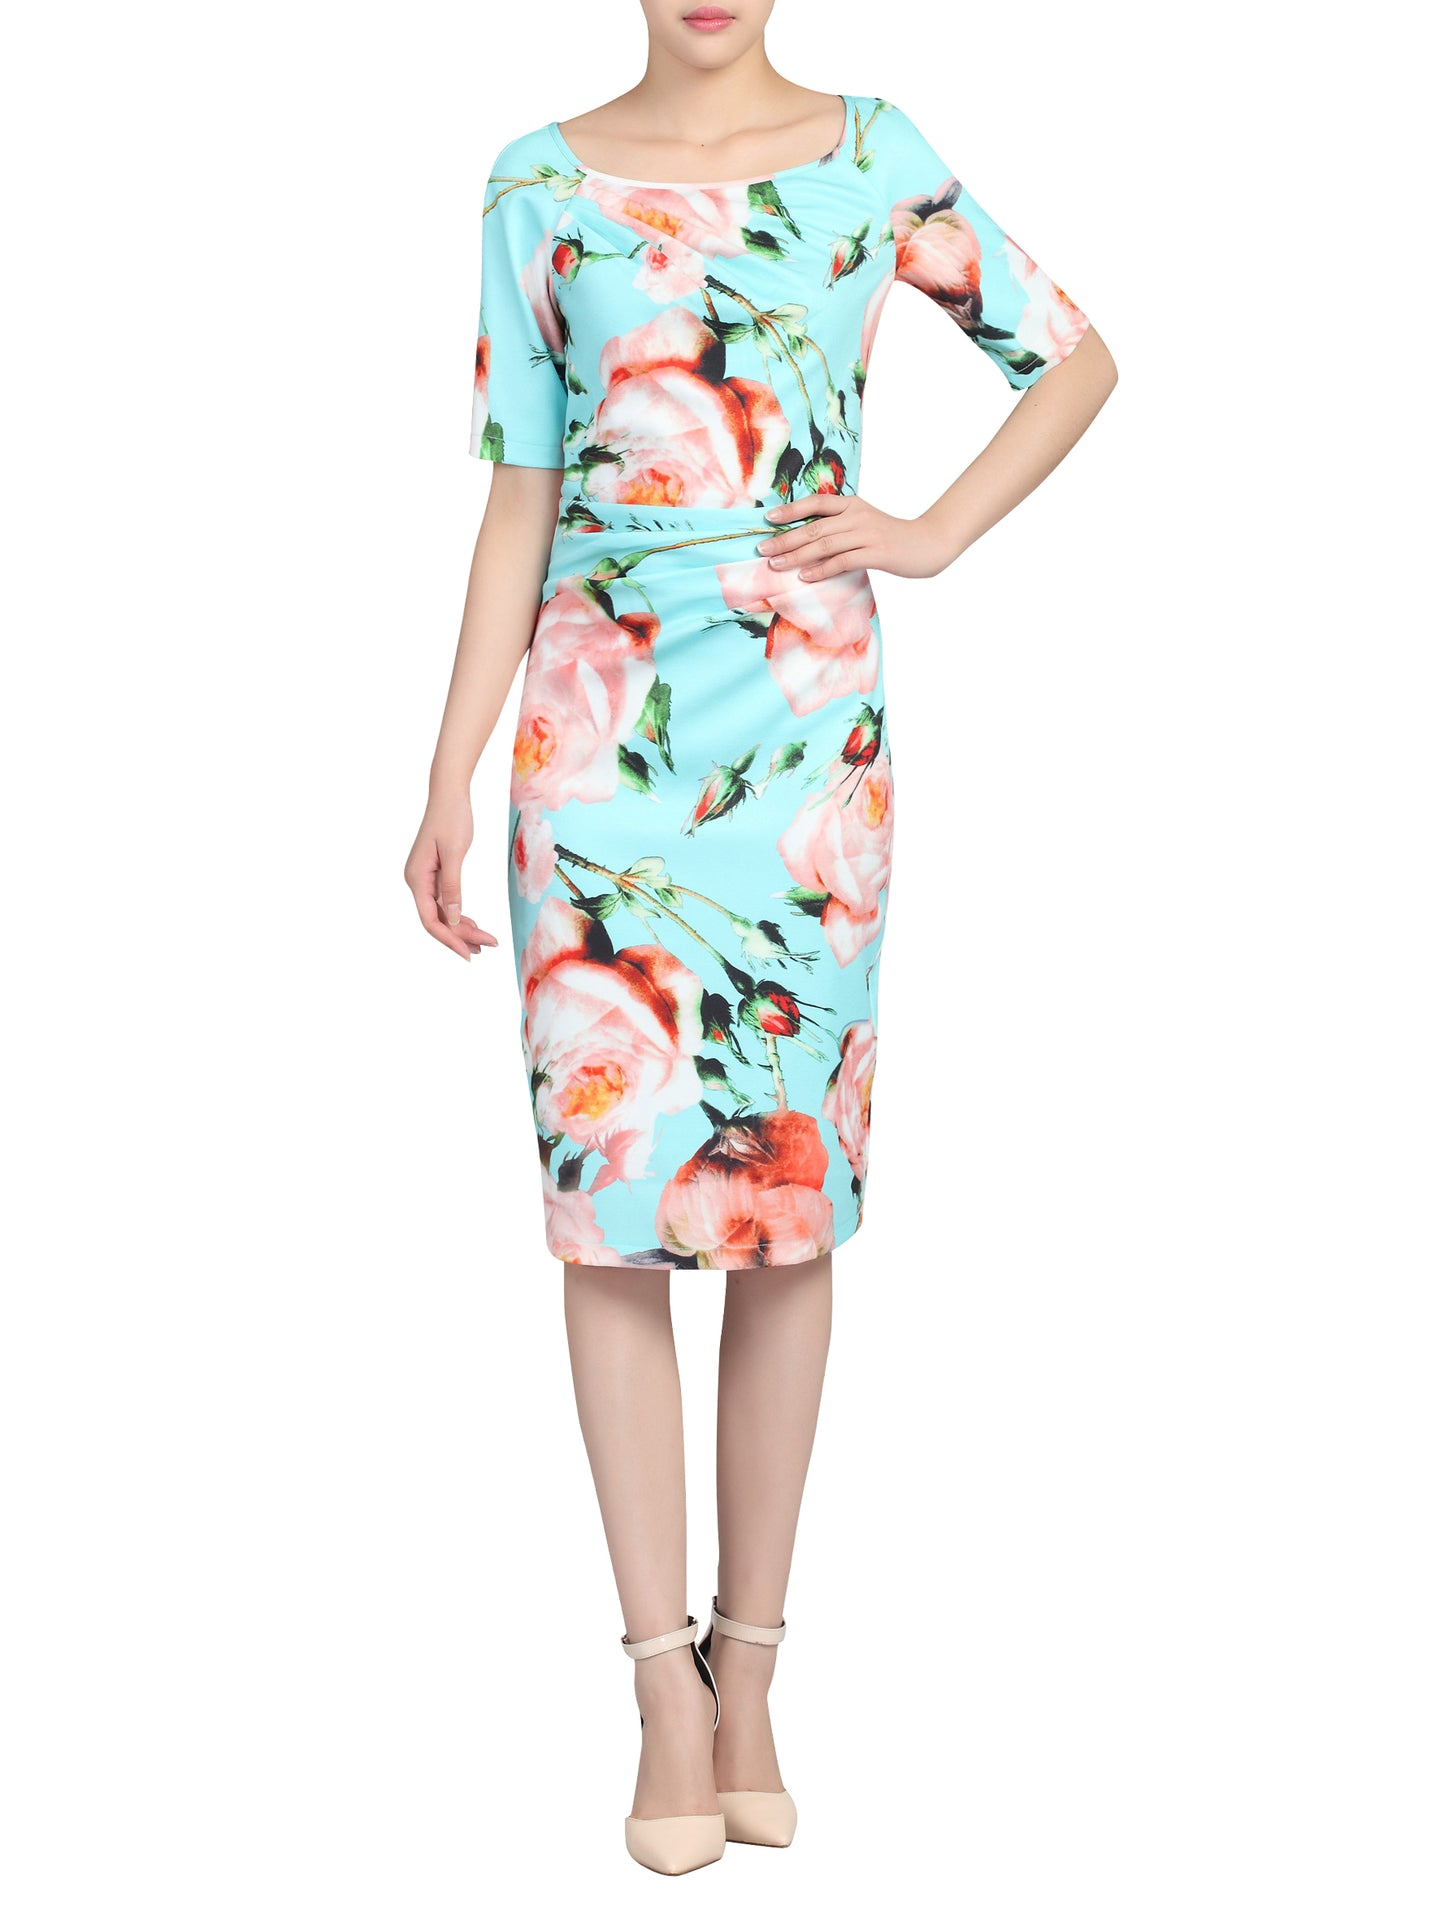 Half Sleeve Floral Print Ruched Dress, Green Floral